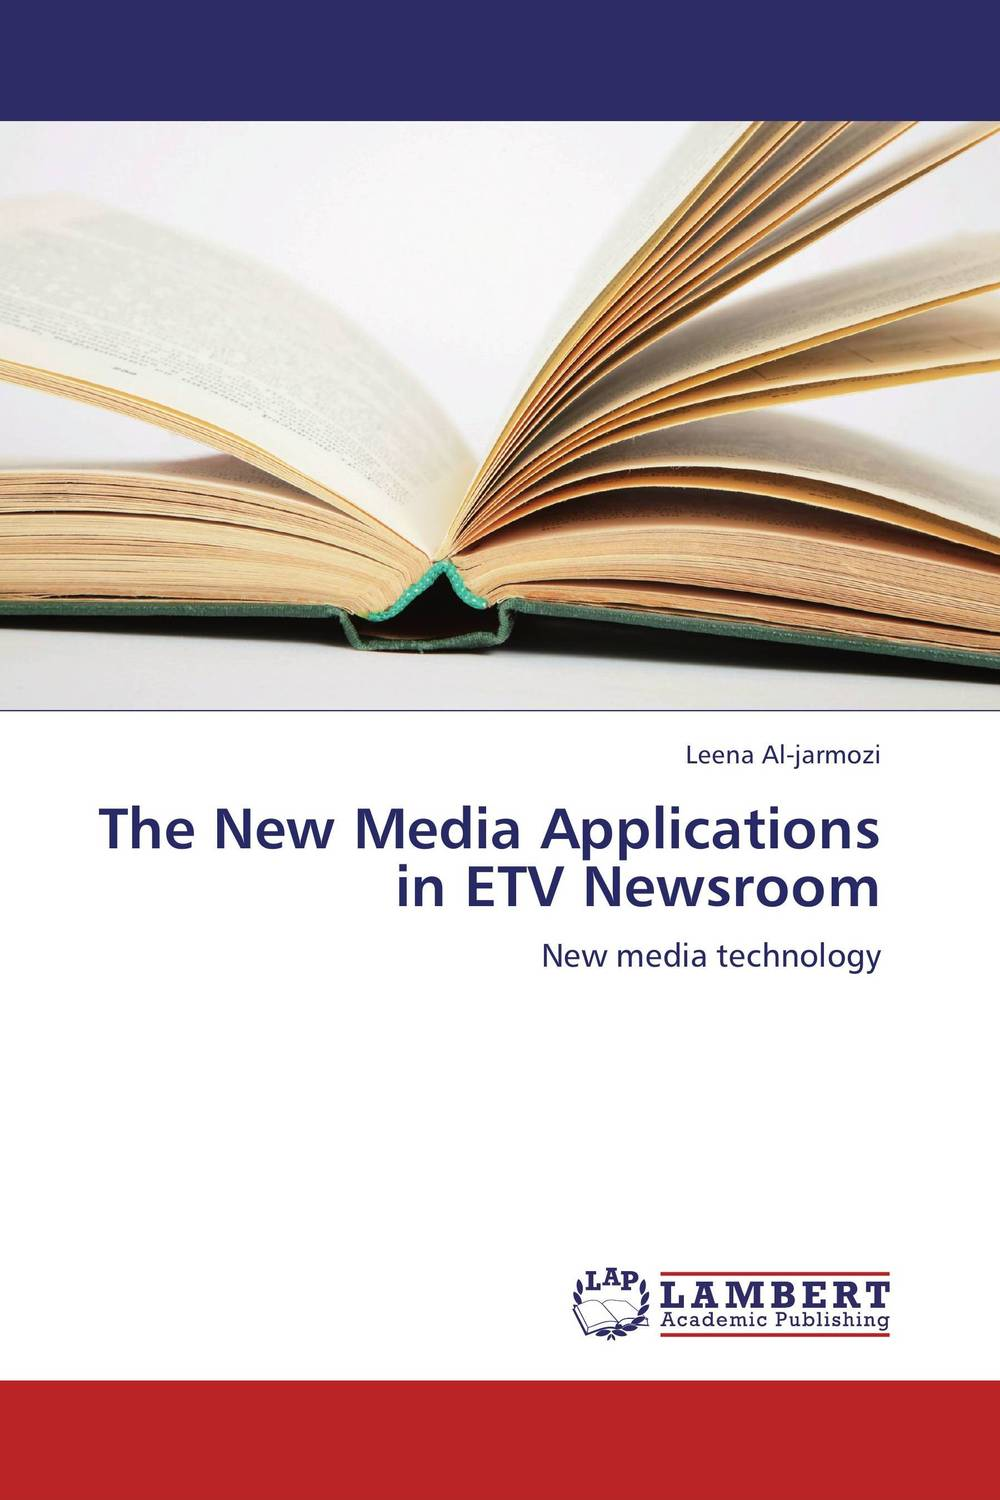 The New Media Applications in ETV Newsroom